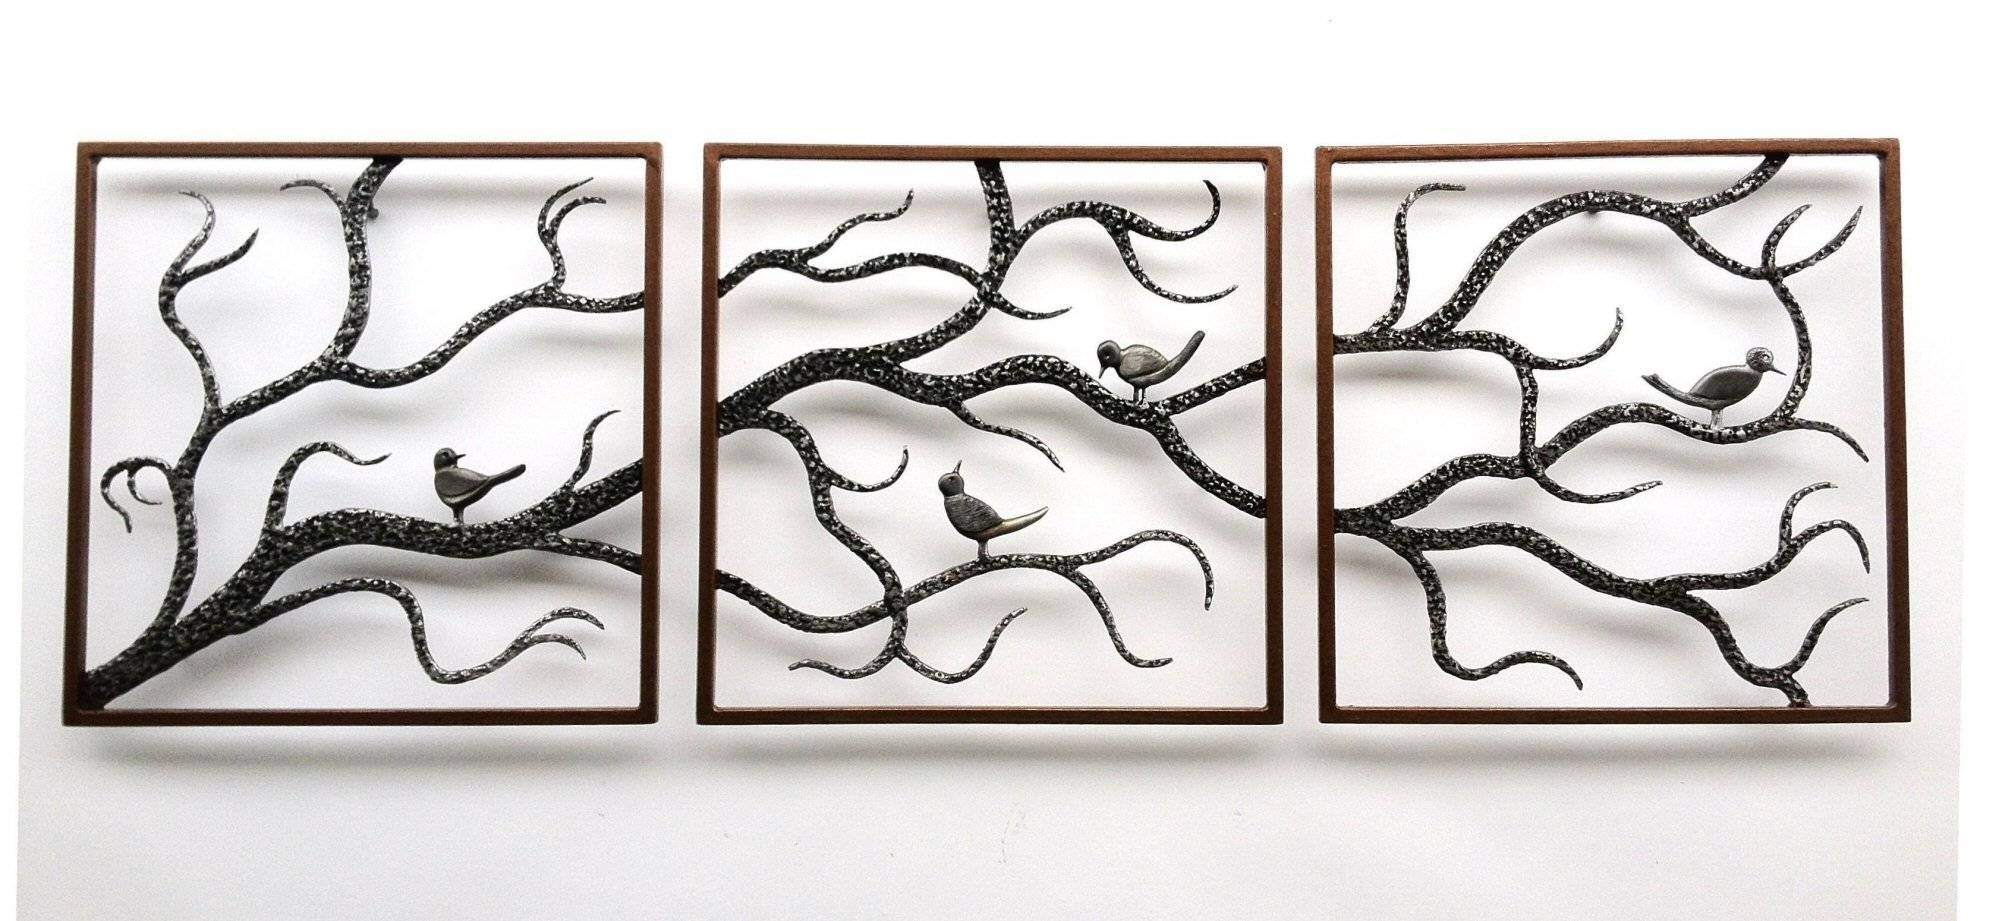 Wall Art Designs: Metal Wall Art Trees Birch Three Framed Cute Pertaining To Most Recent Home Metal Wall Art (View 16 of 20)